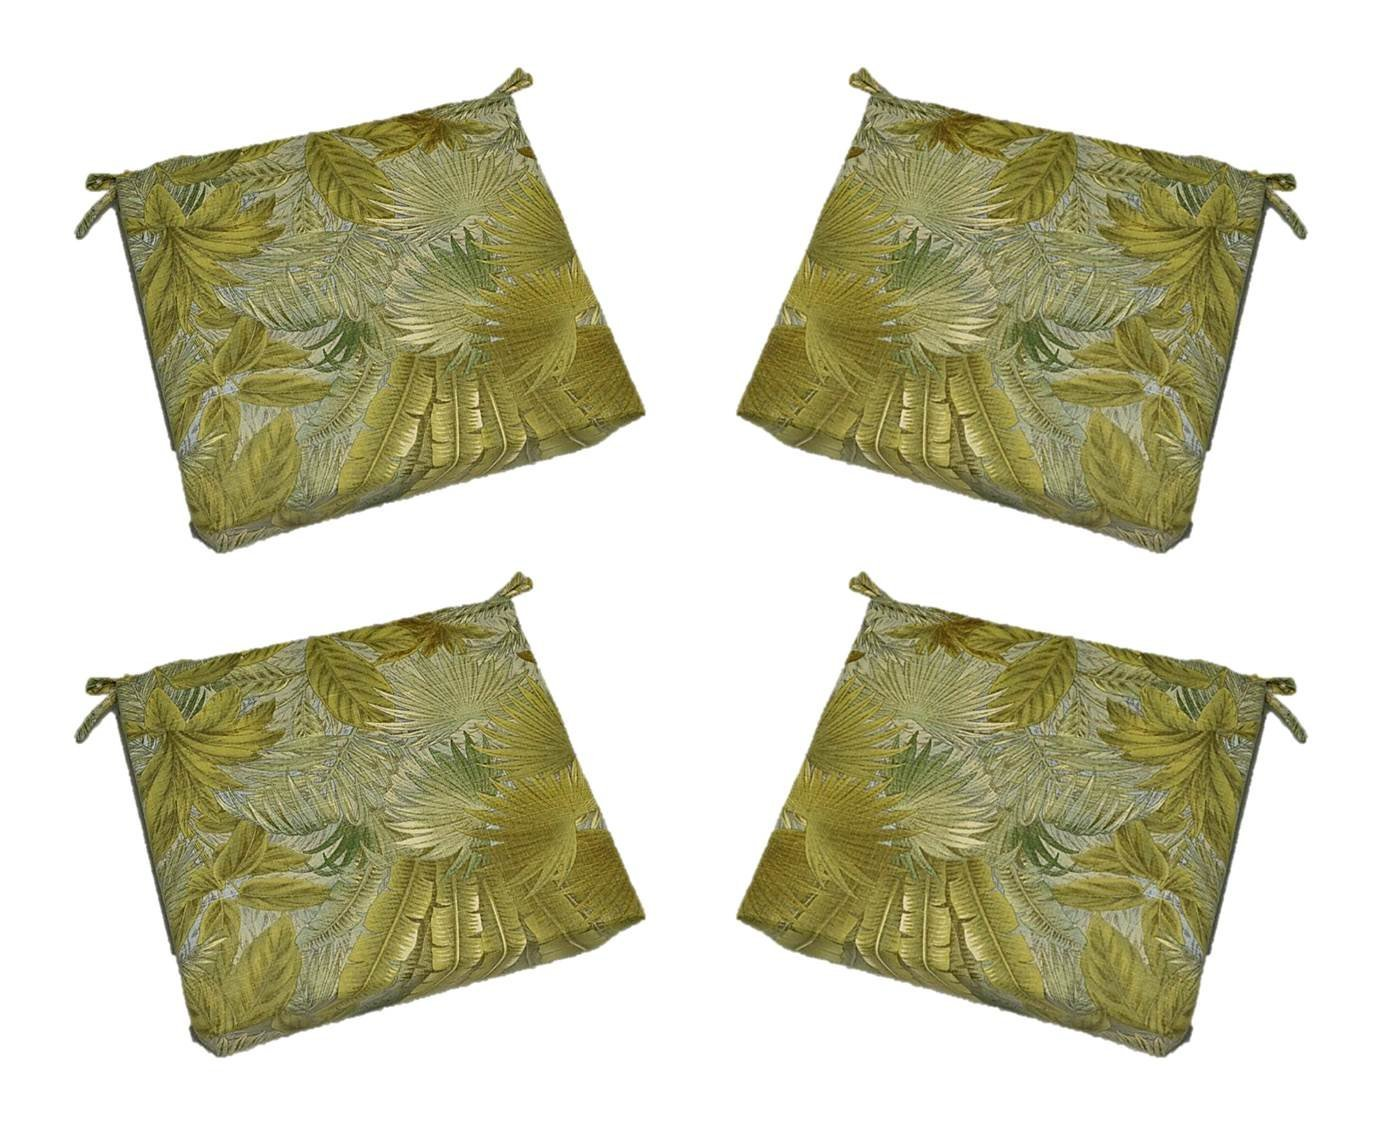 "Set of 4 - Indoor / Outdoor Tommy Bahama Bahamian Breeze Tropical Palm Leaf Floral - Surf Blue / Green, Tan 17"" X 17"" Square Universal 2"" Thick Foam Seat Cushions with Ties for Dining Patio Chairs"